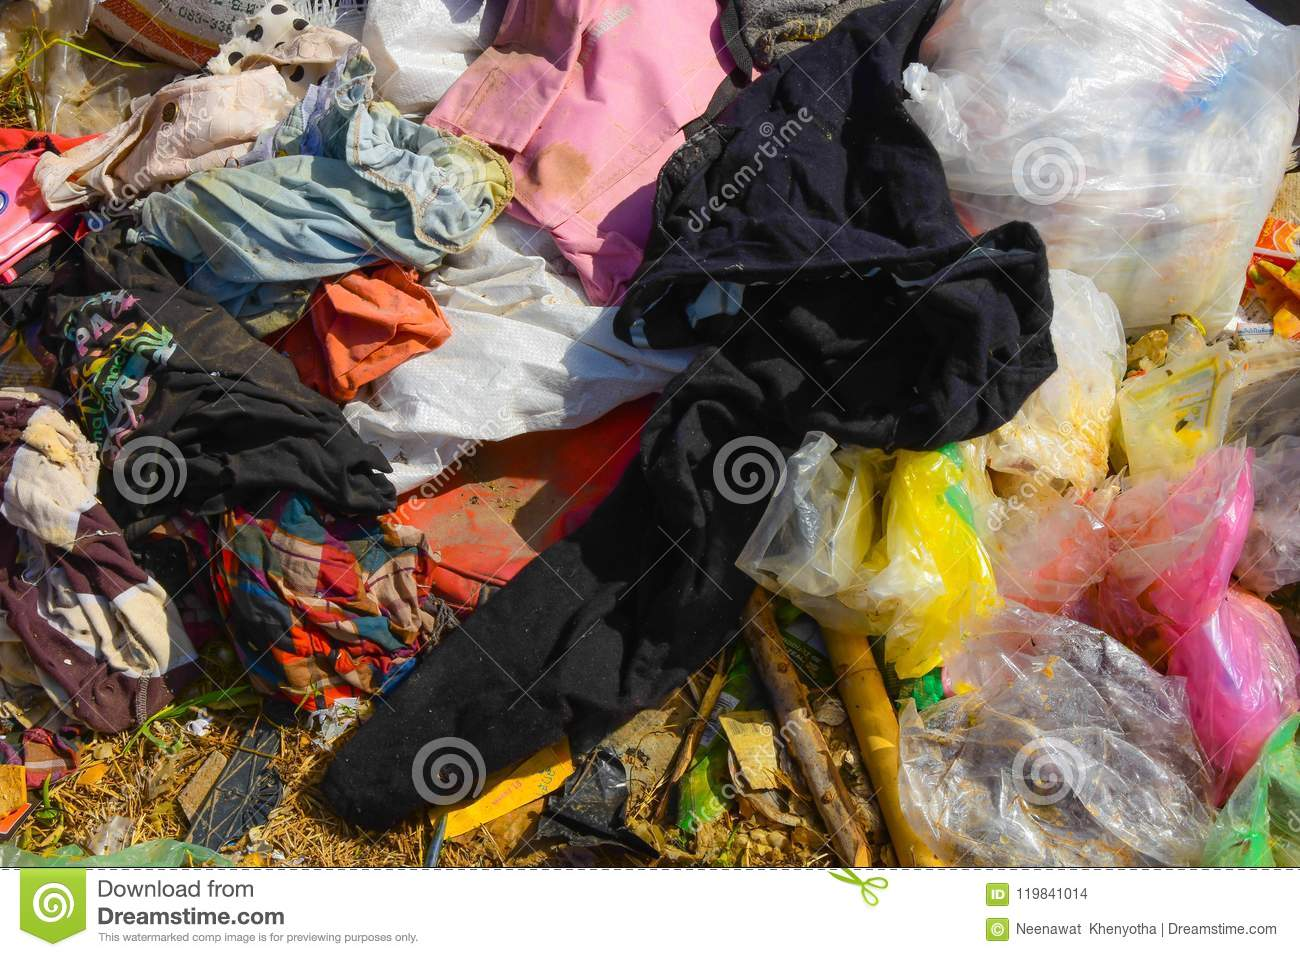 Waste from garbage that is degraded by natural means.